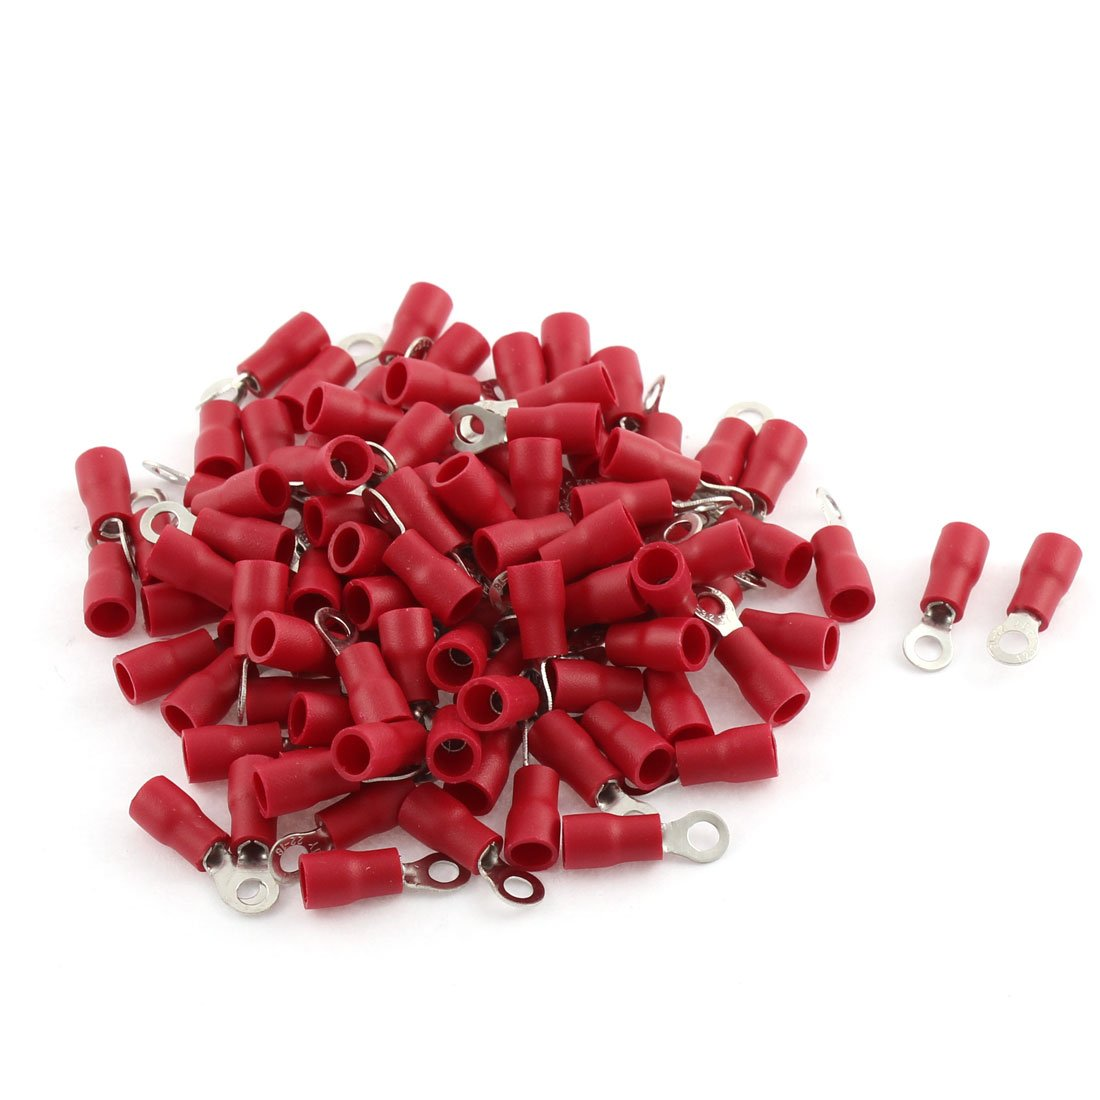 uxcell 100pcs Ring Tongue Pre Insulated Terminals Red for AWG 22-16 Cable